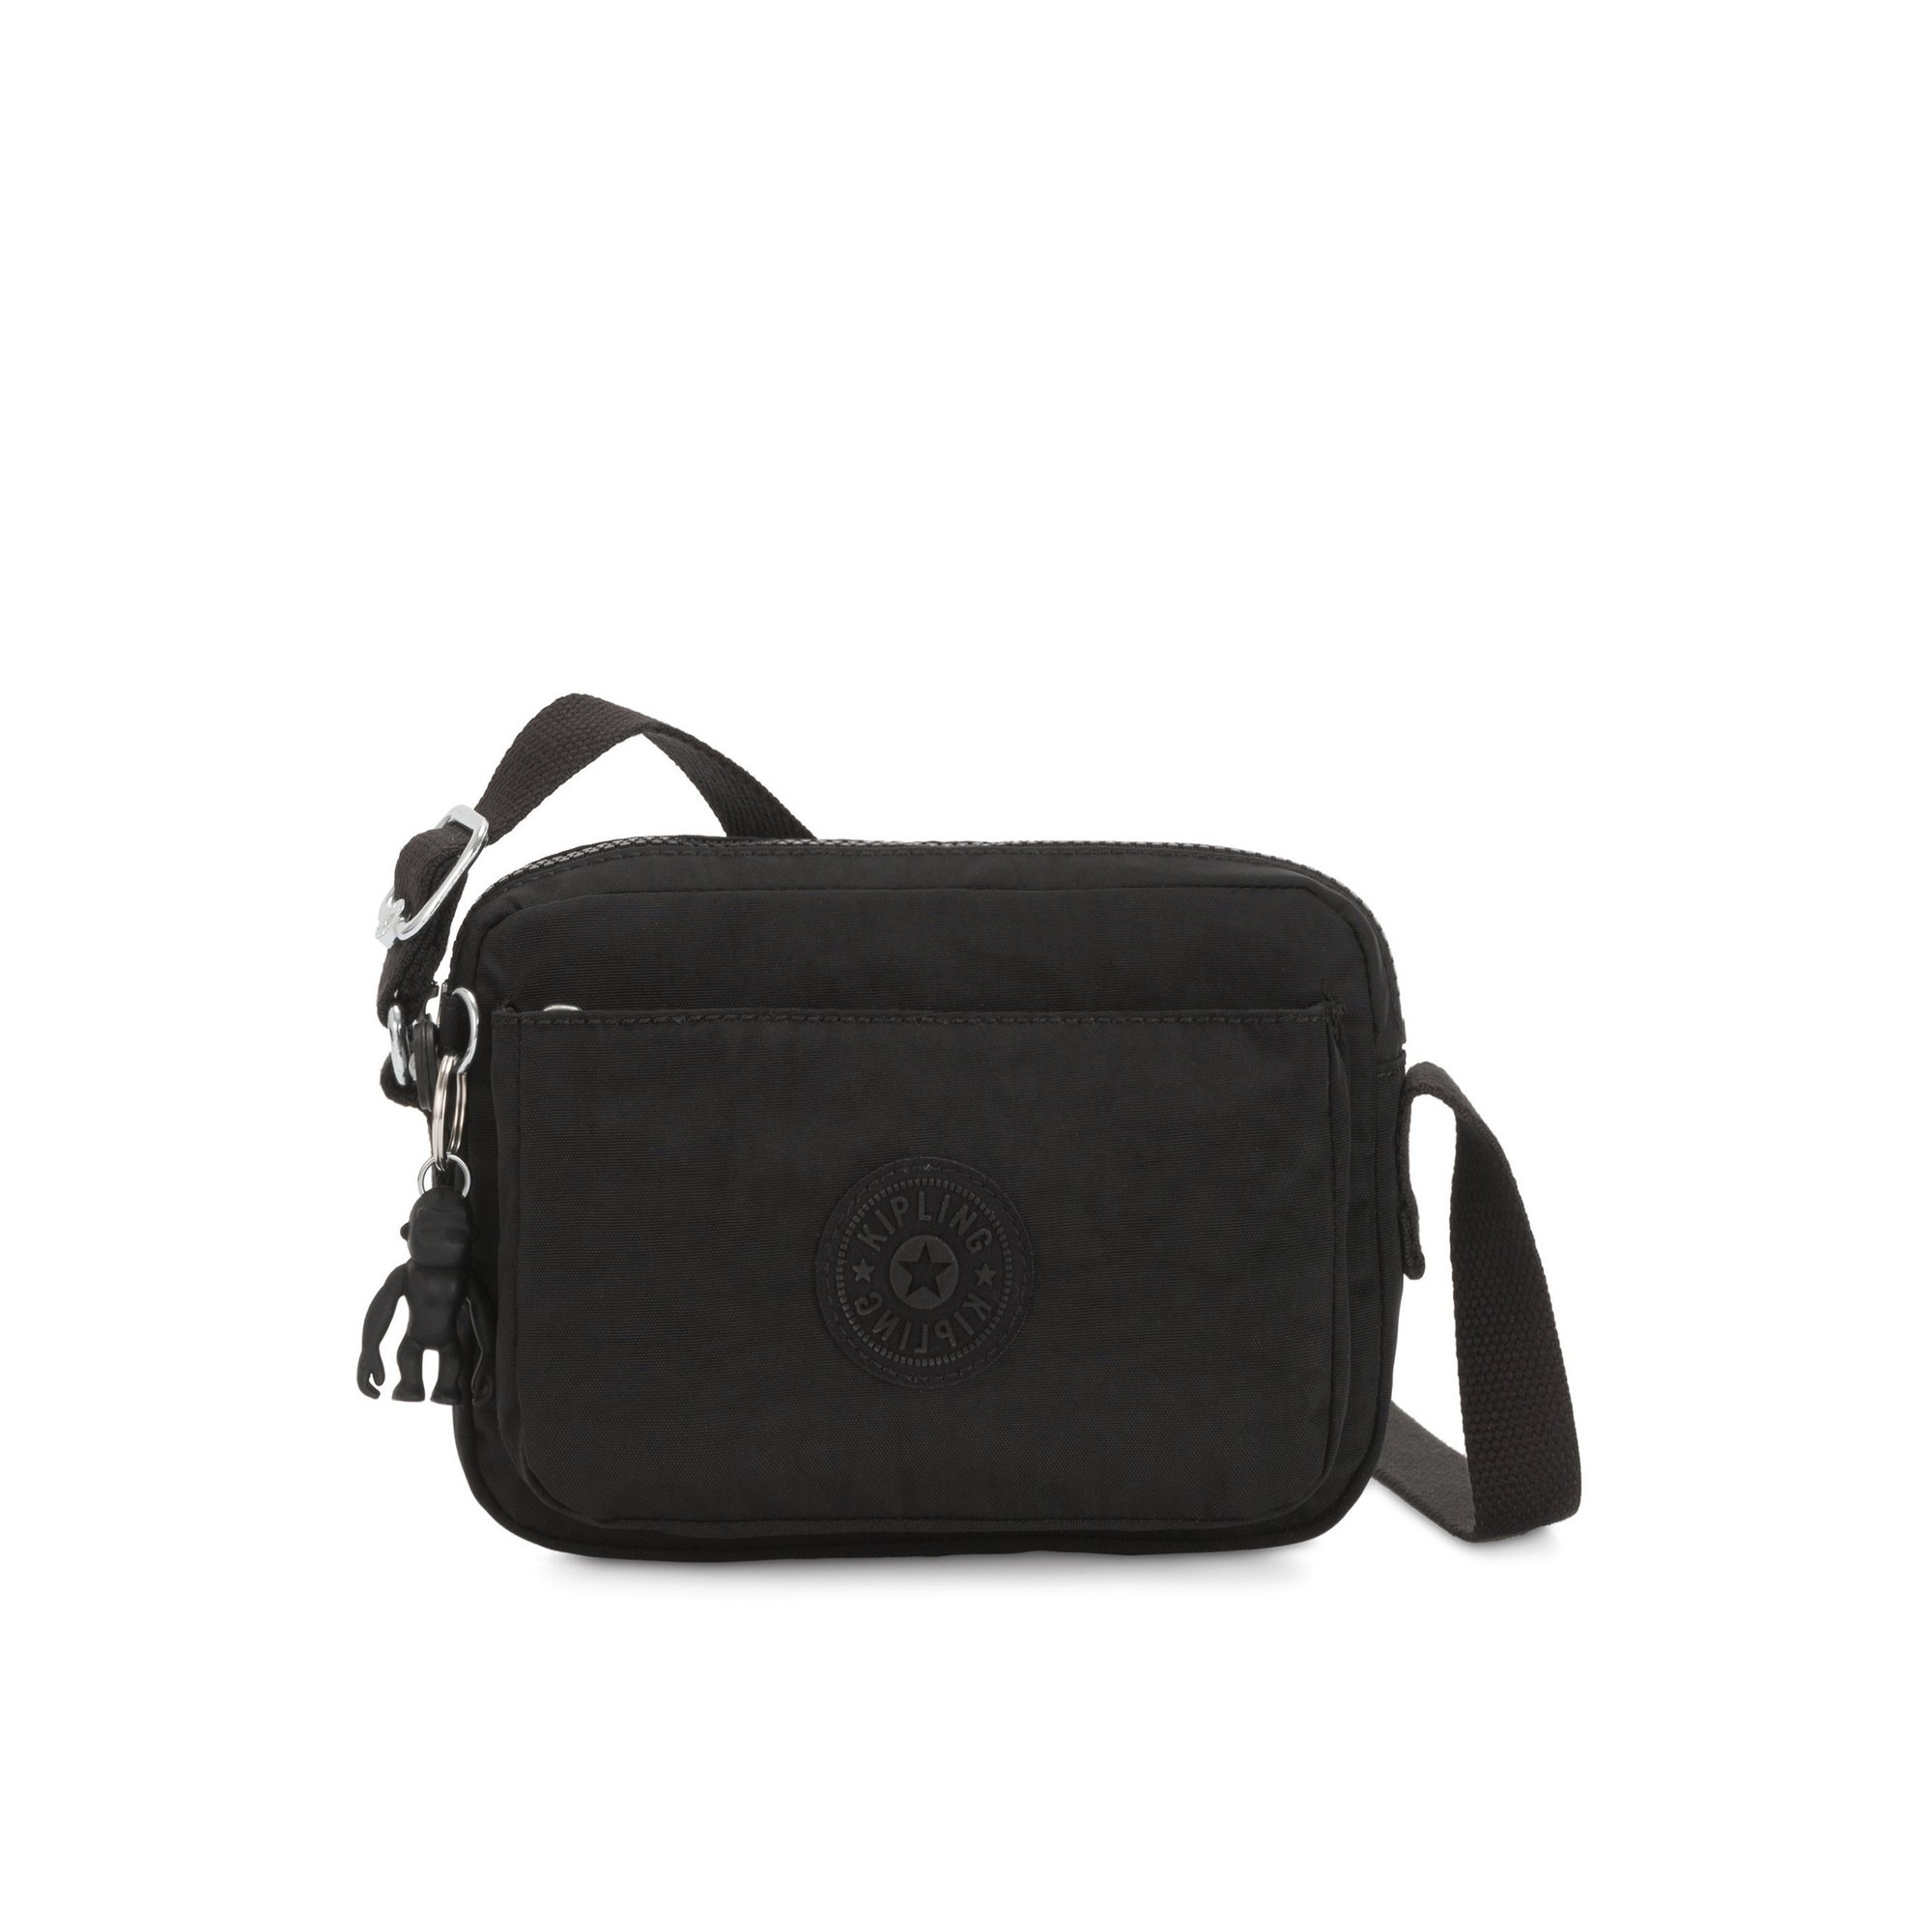 Image of Kipling Abanu M Black Cross Body Bag